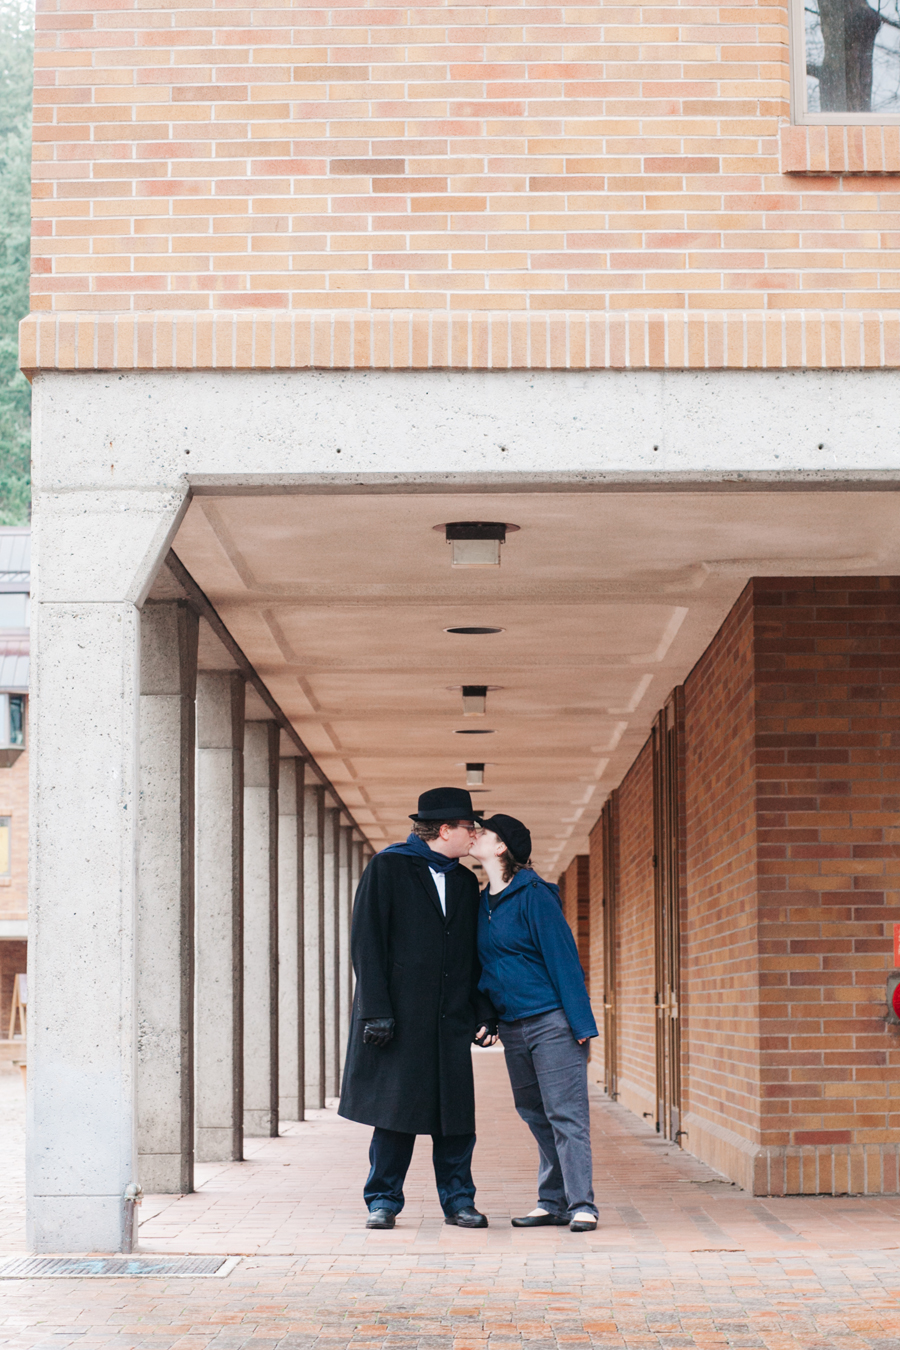 018-bellingham-engagement-photographer-western-washington-university-katheryn-moran-photography.jpg